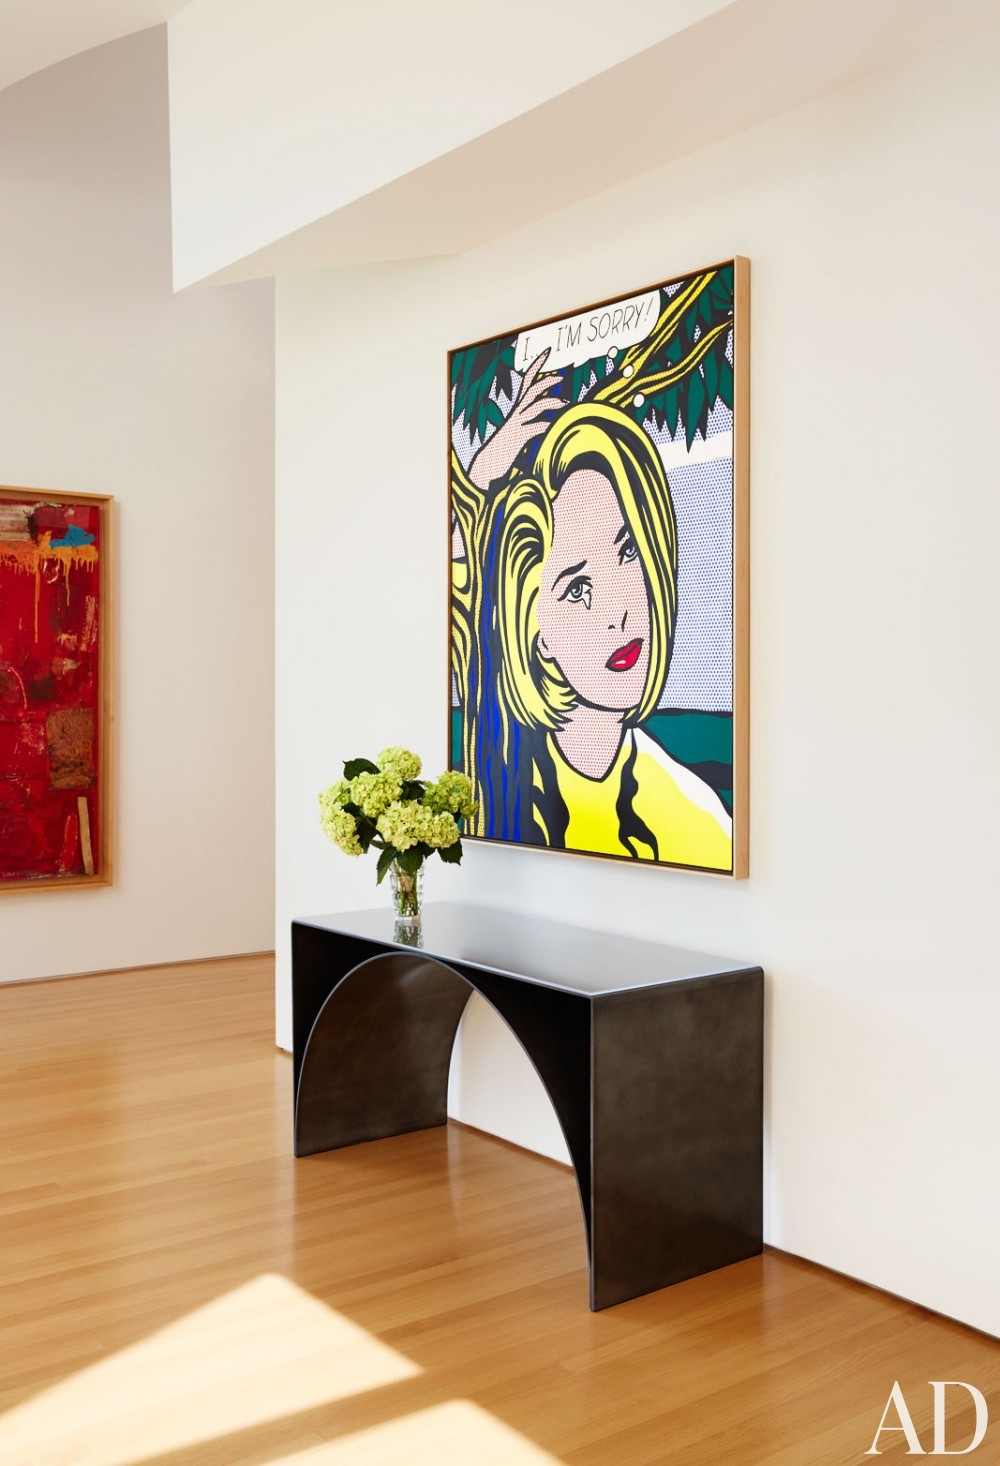 Modern Entrance Hall by Rose Tarlow and Langdon Wilson in Brentwood, CA